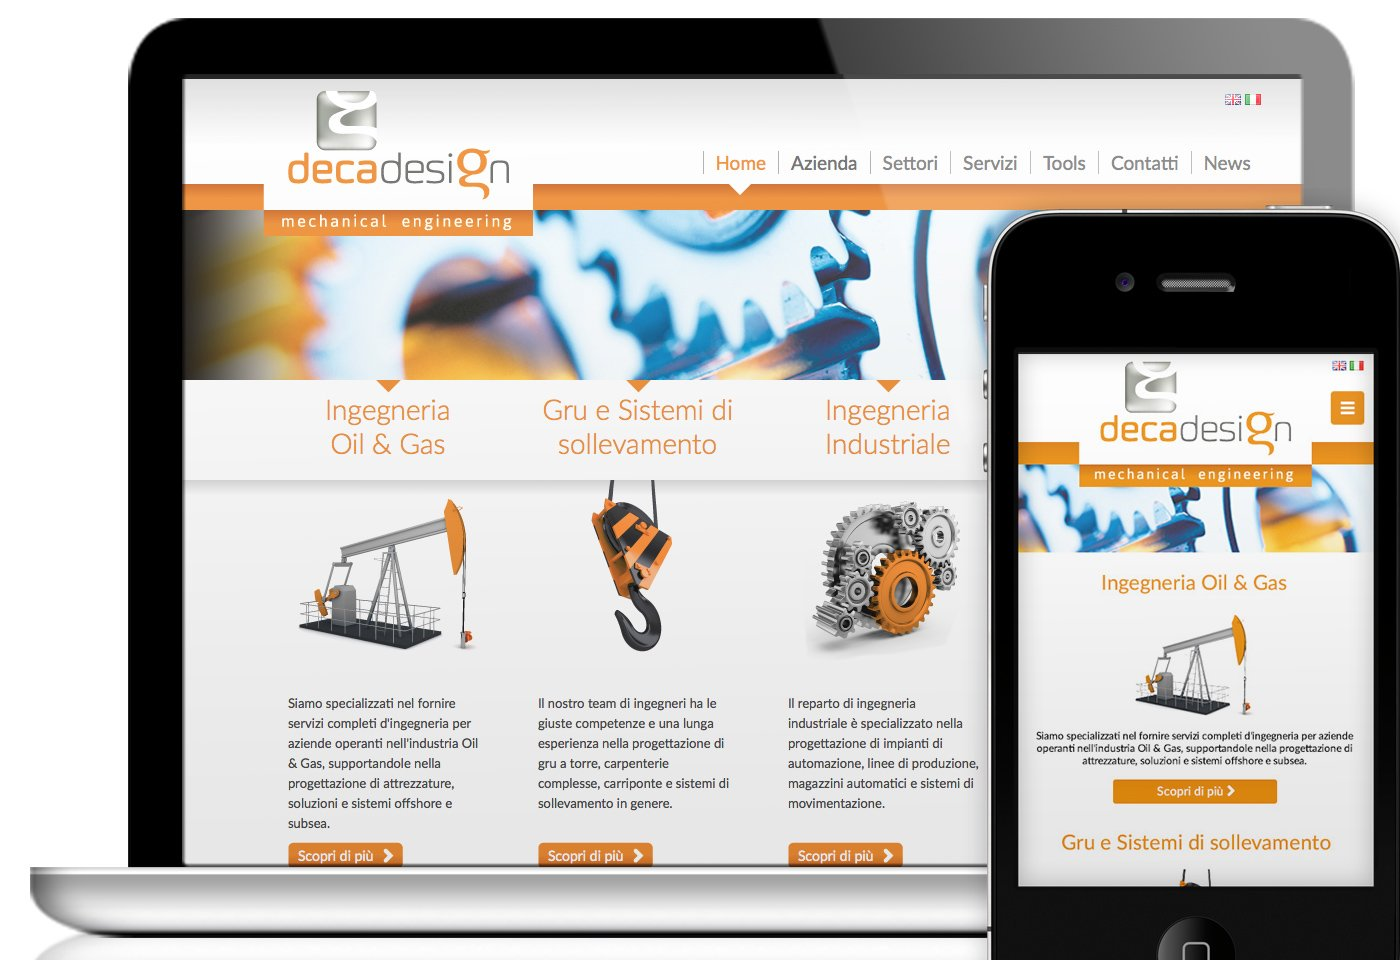 Sito Decadesign mobile-friendly